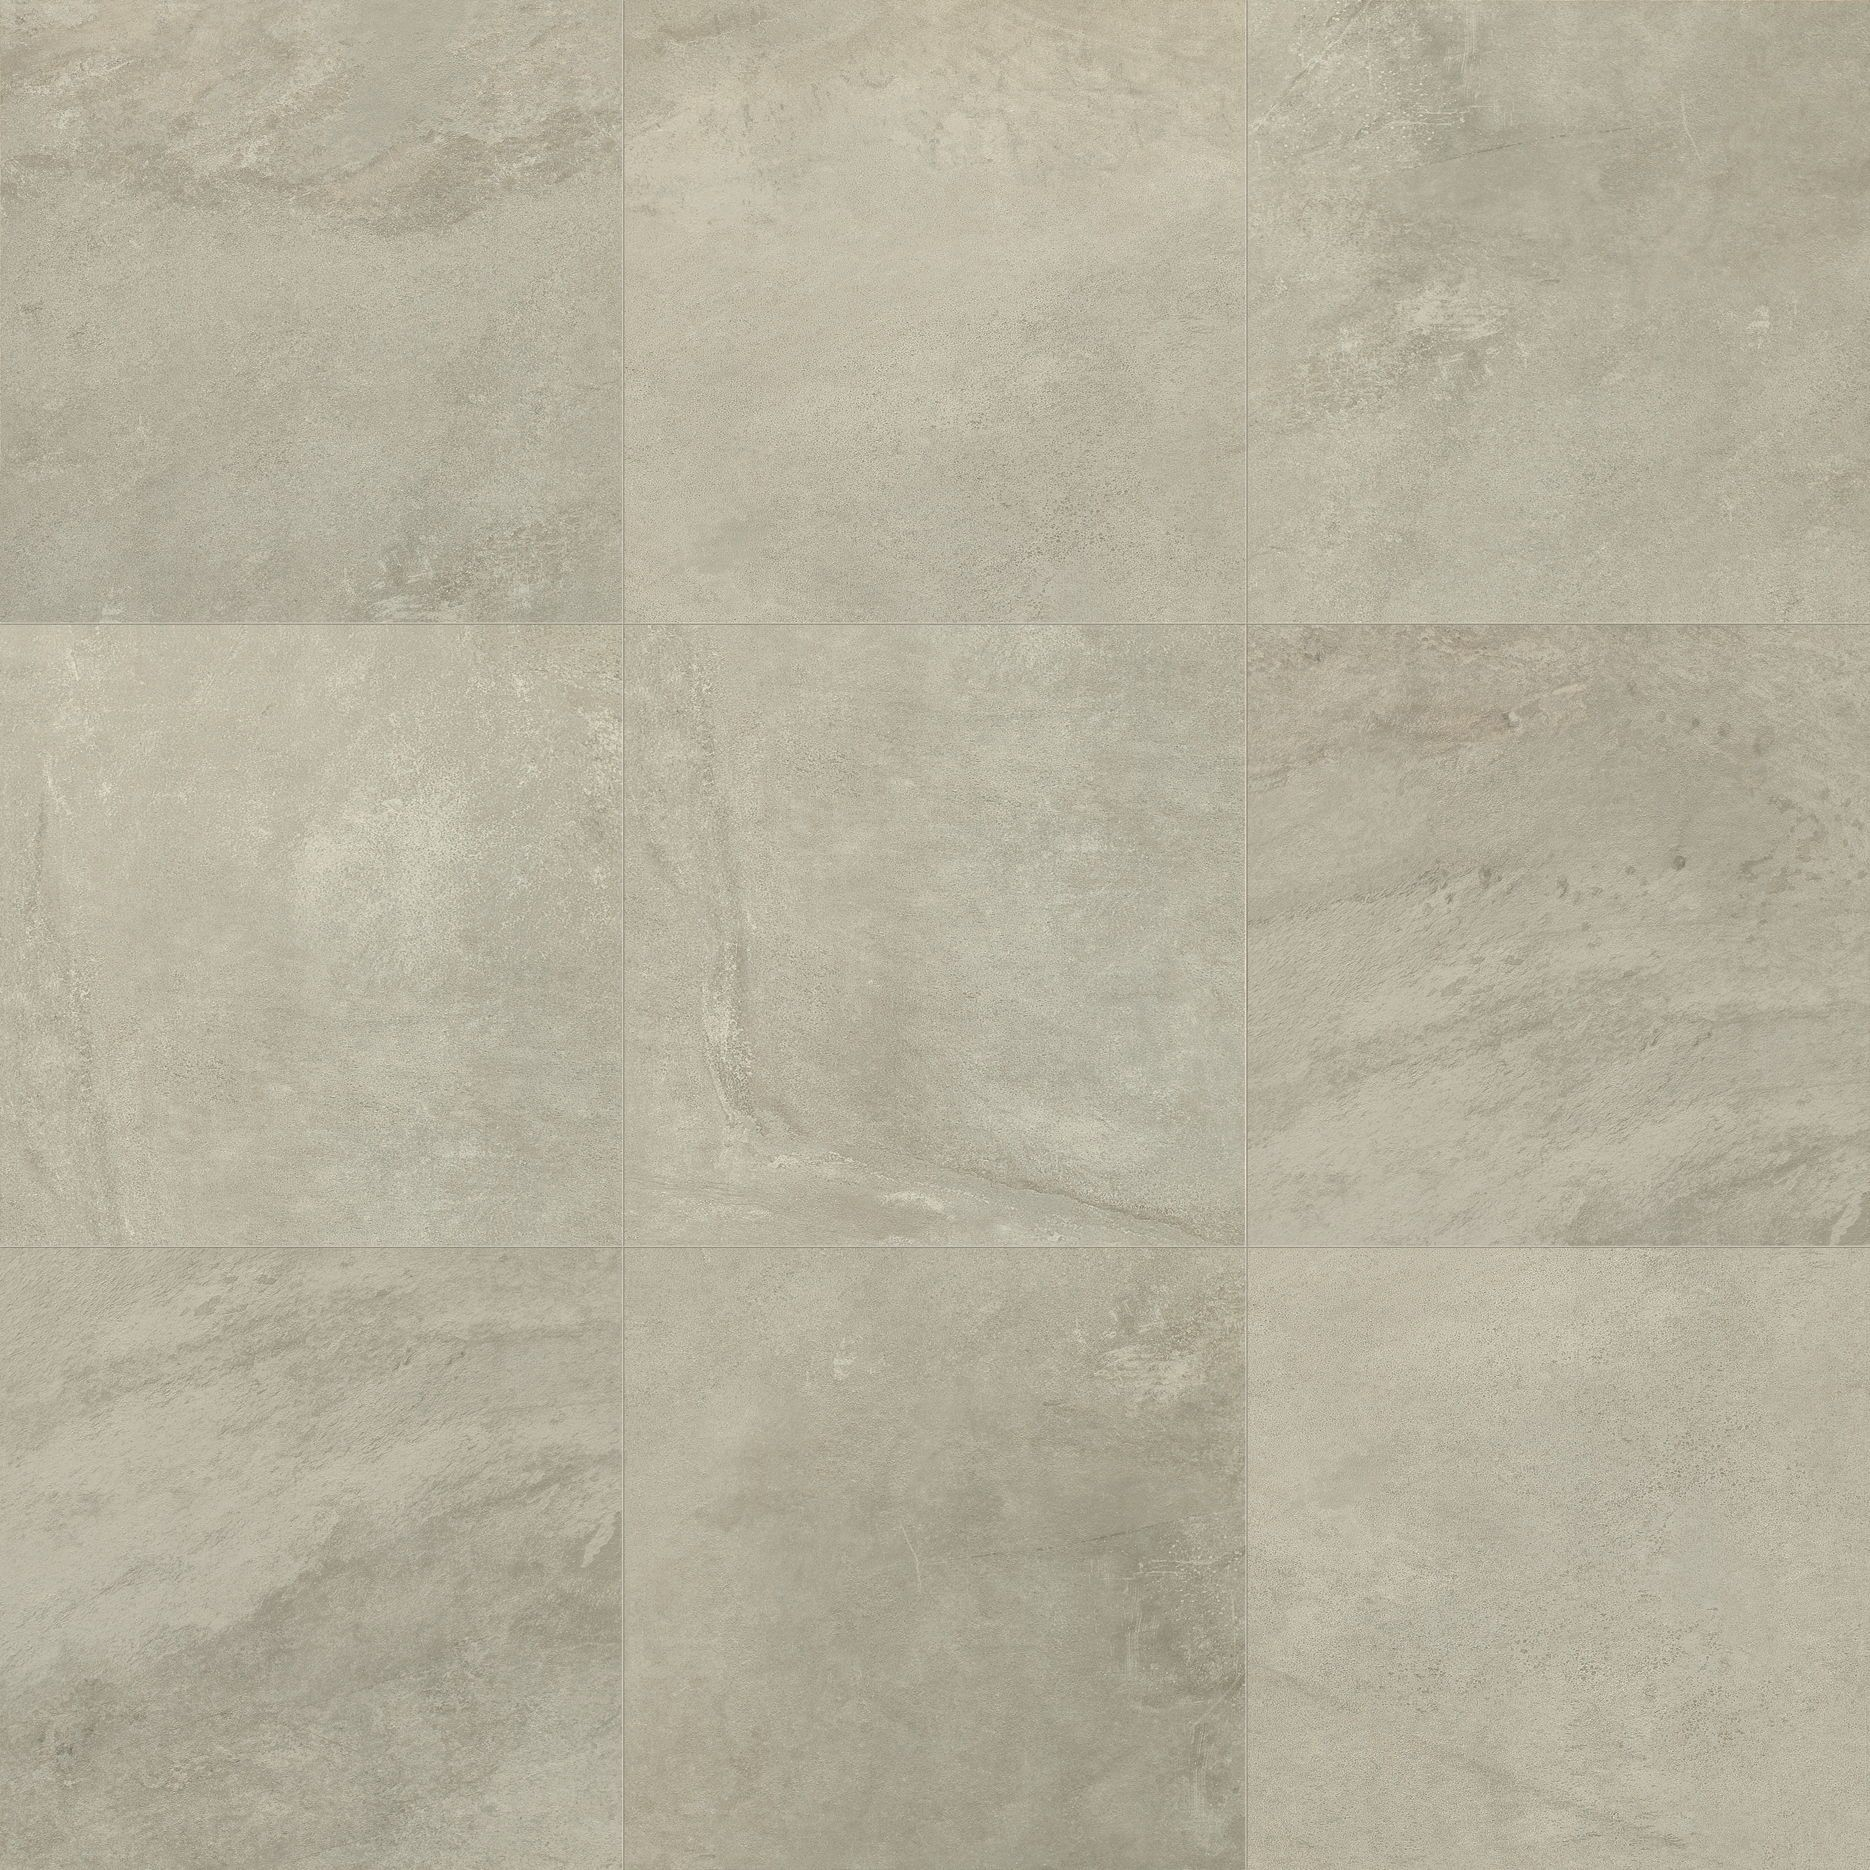 From italy with fervor styletech floor gres new collection tile flooring dailygadgetfo Image collections